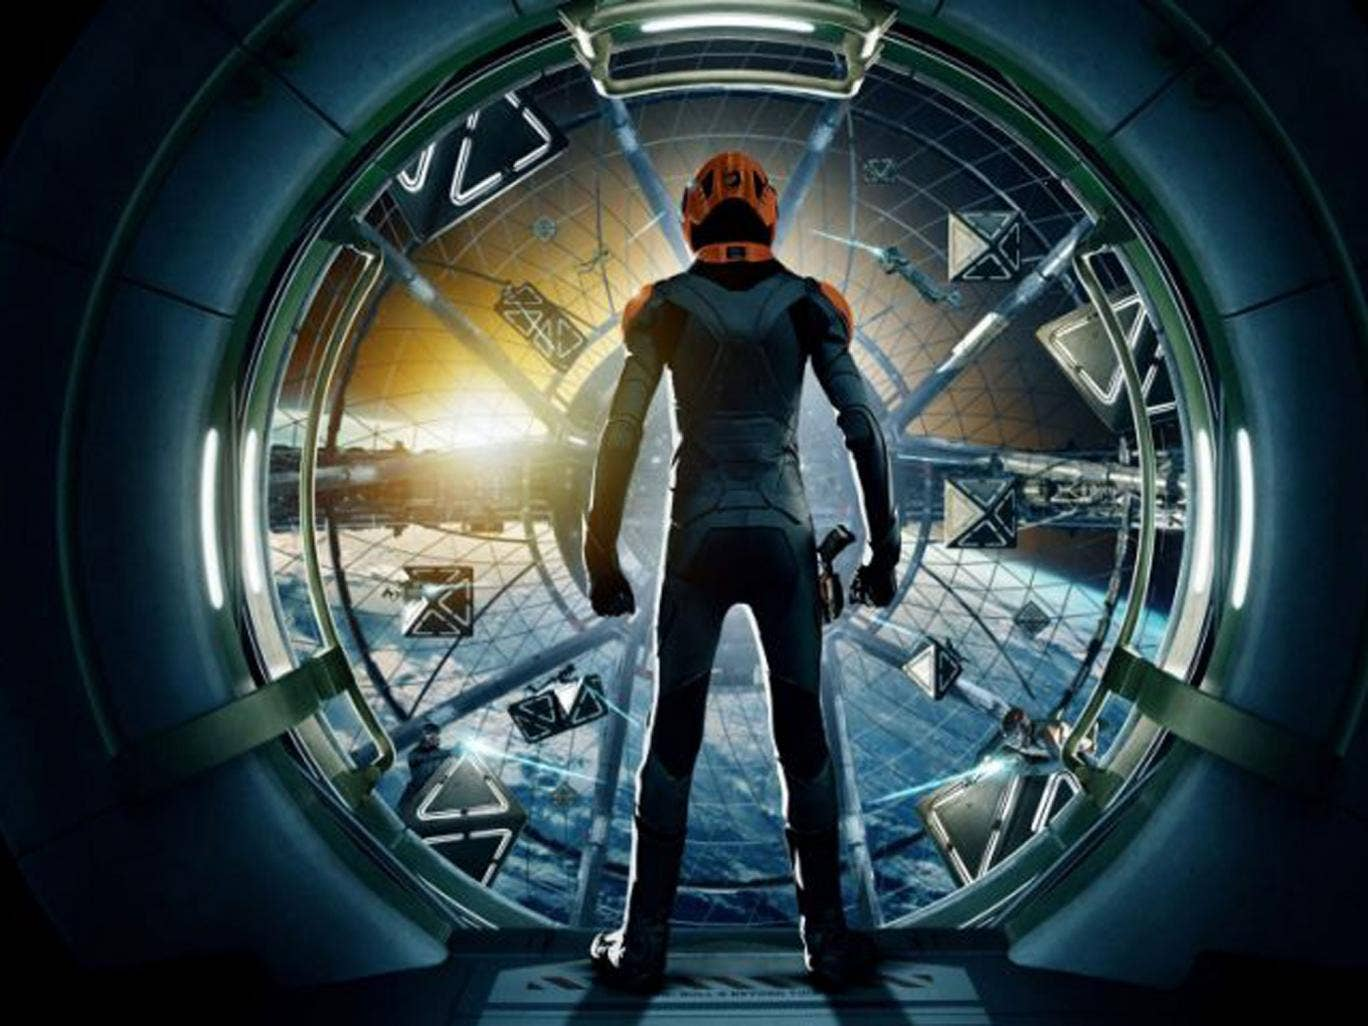 Ender's Game, a dystopian thriller starring Harrison Ford